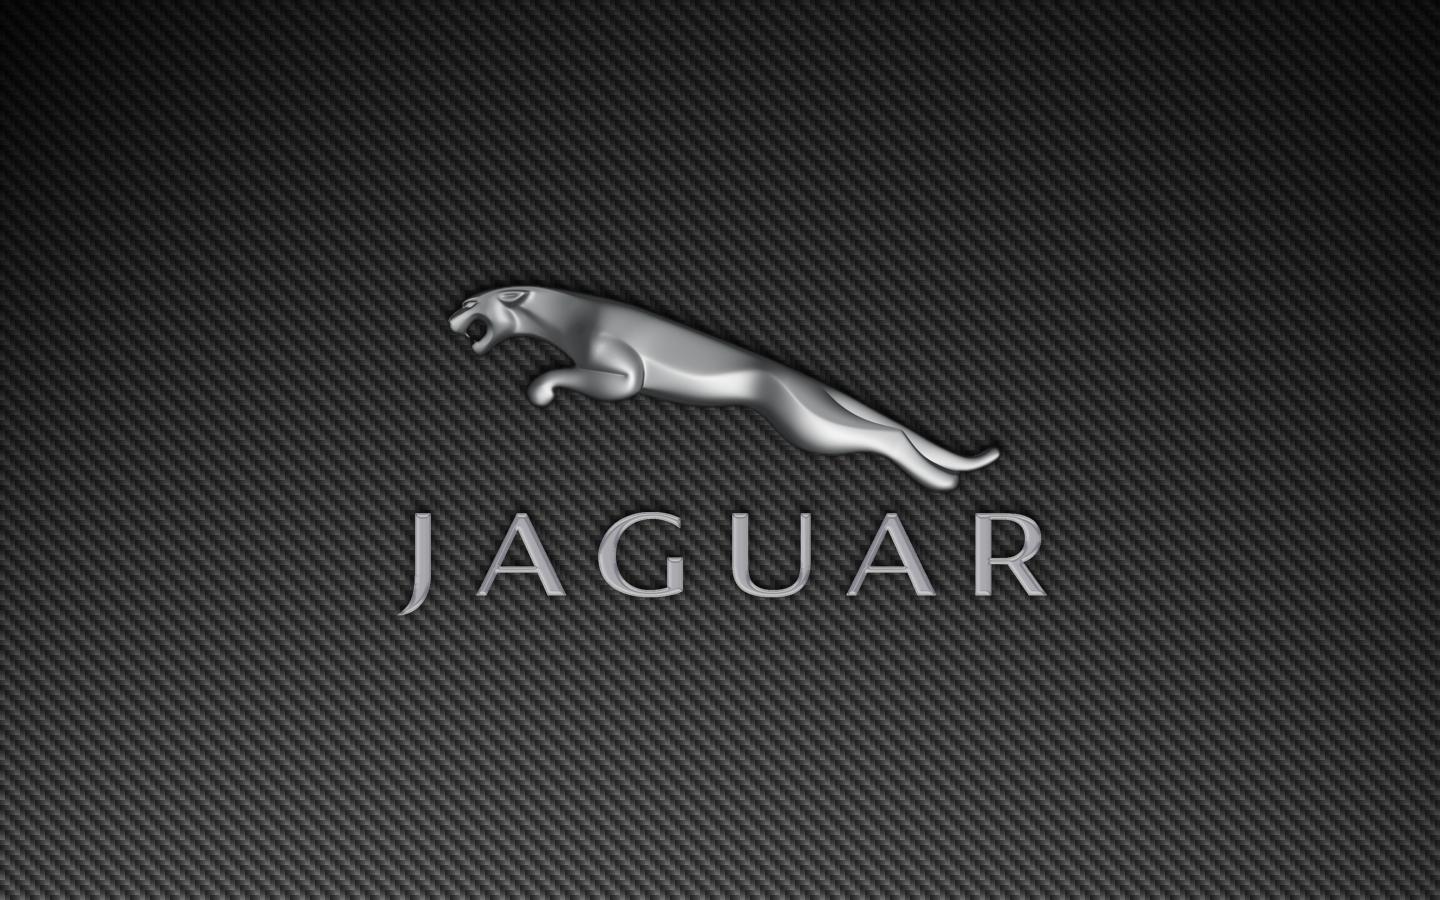 Jaguar Car Logo Wallpapers High Quality Resolution Is Cool Wallpapers